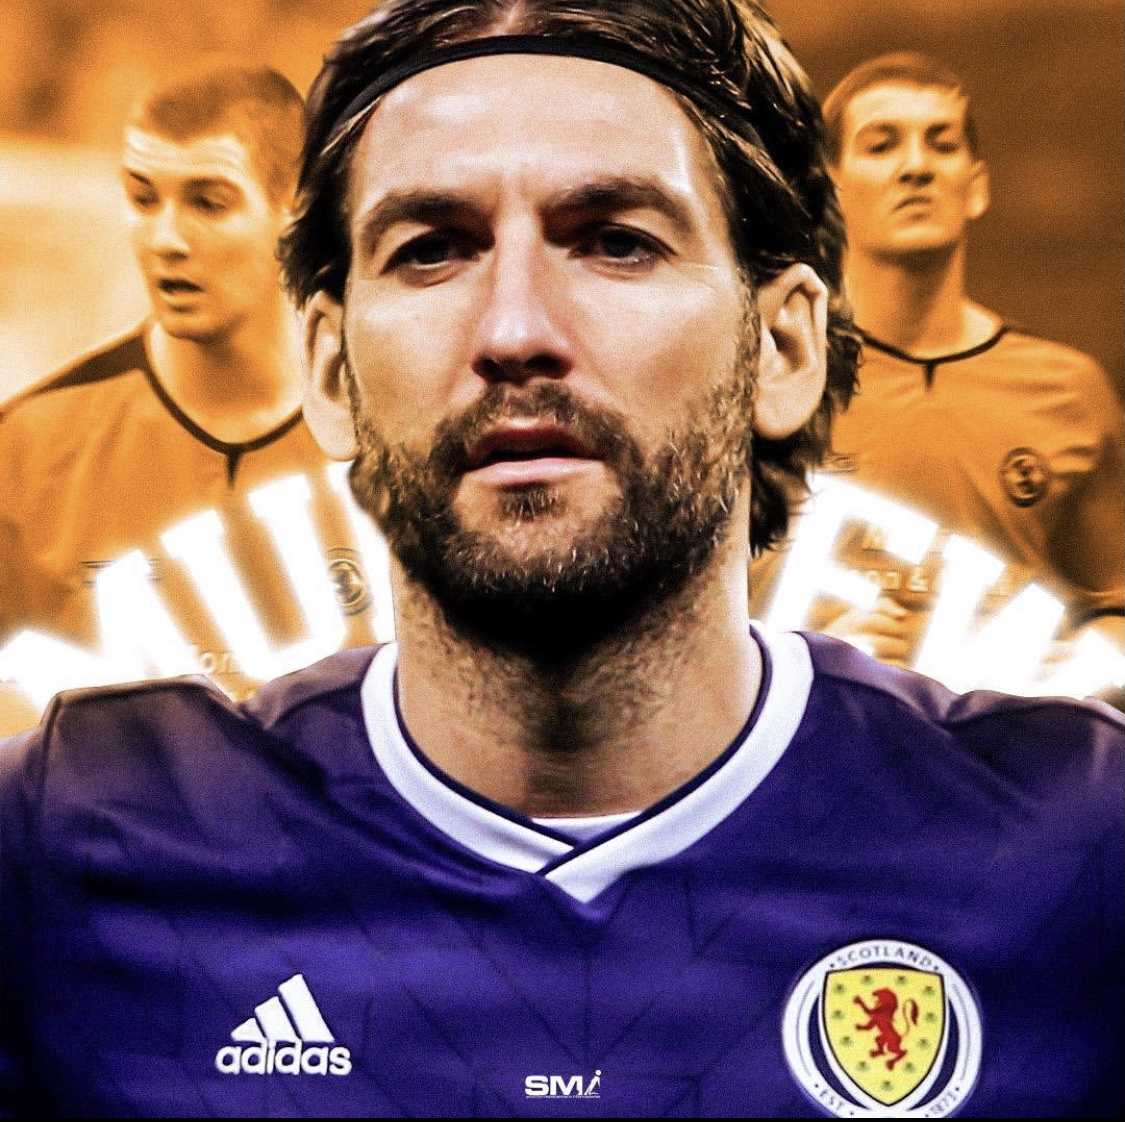 Charlie Mulgrew signs for Dundee United